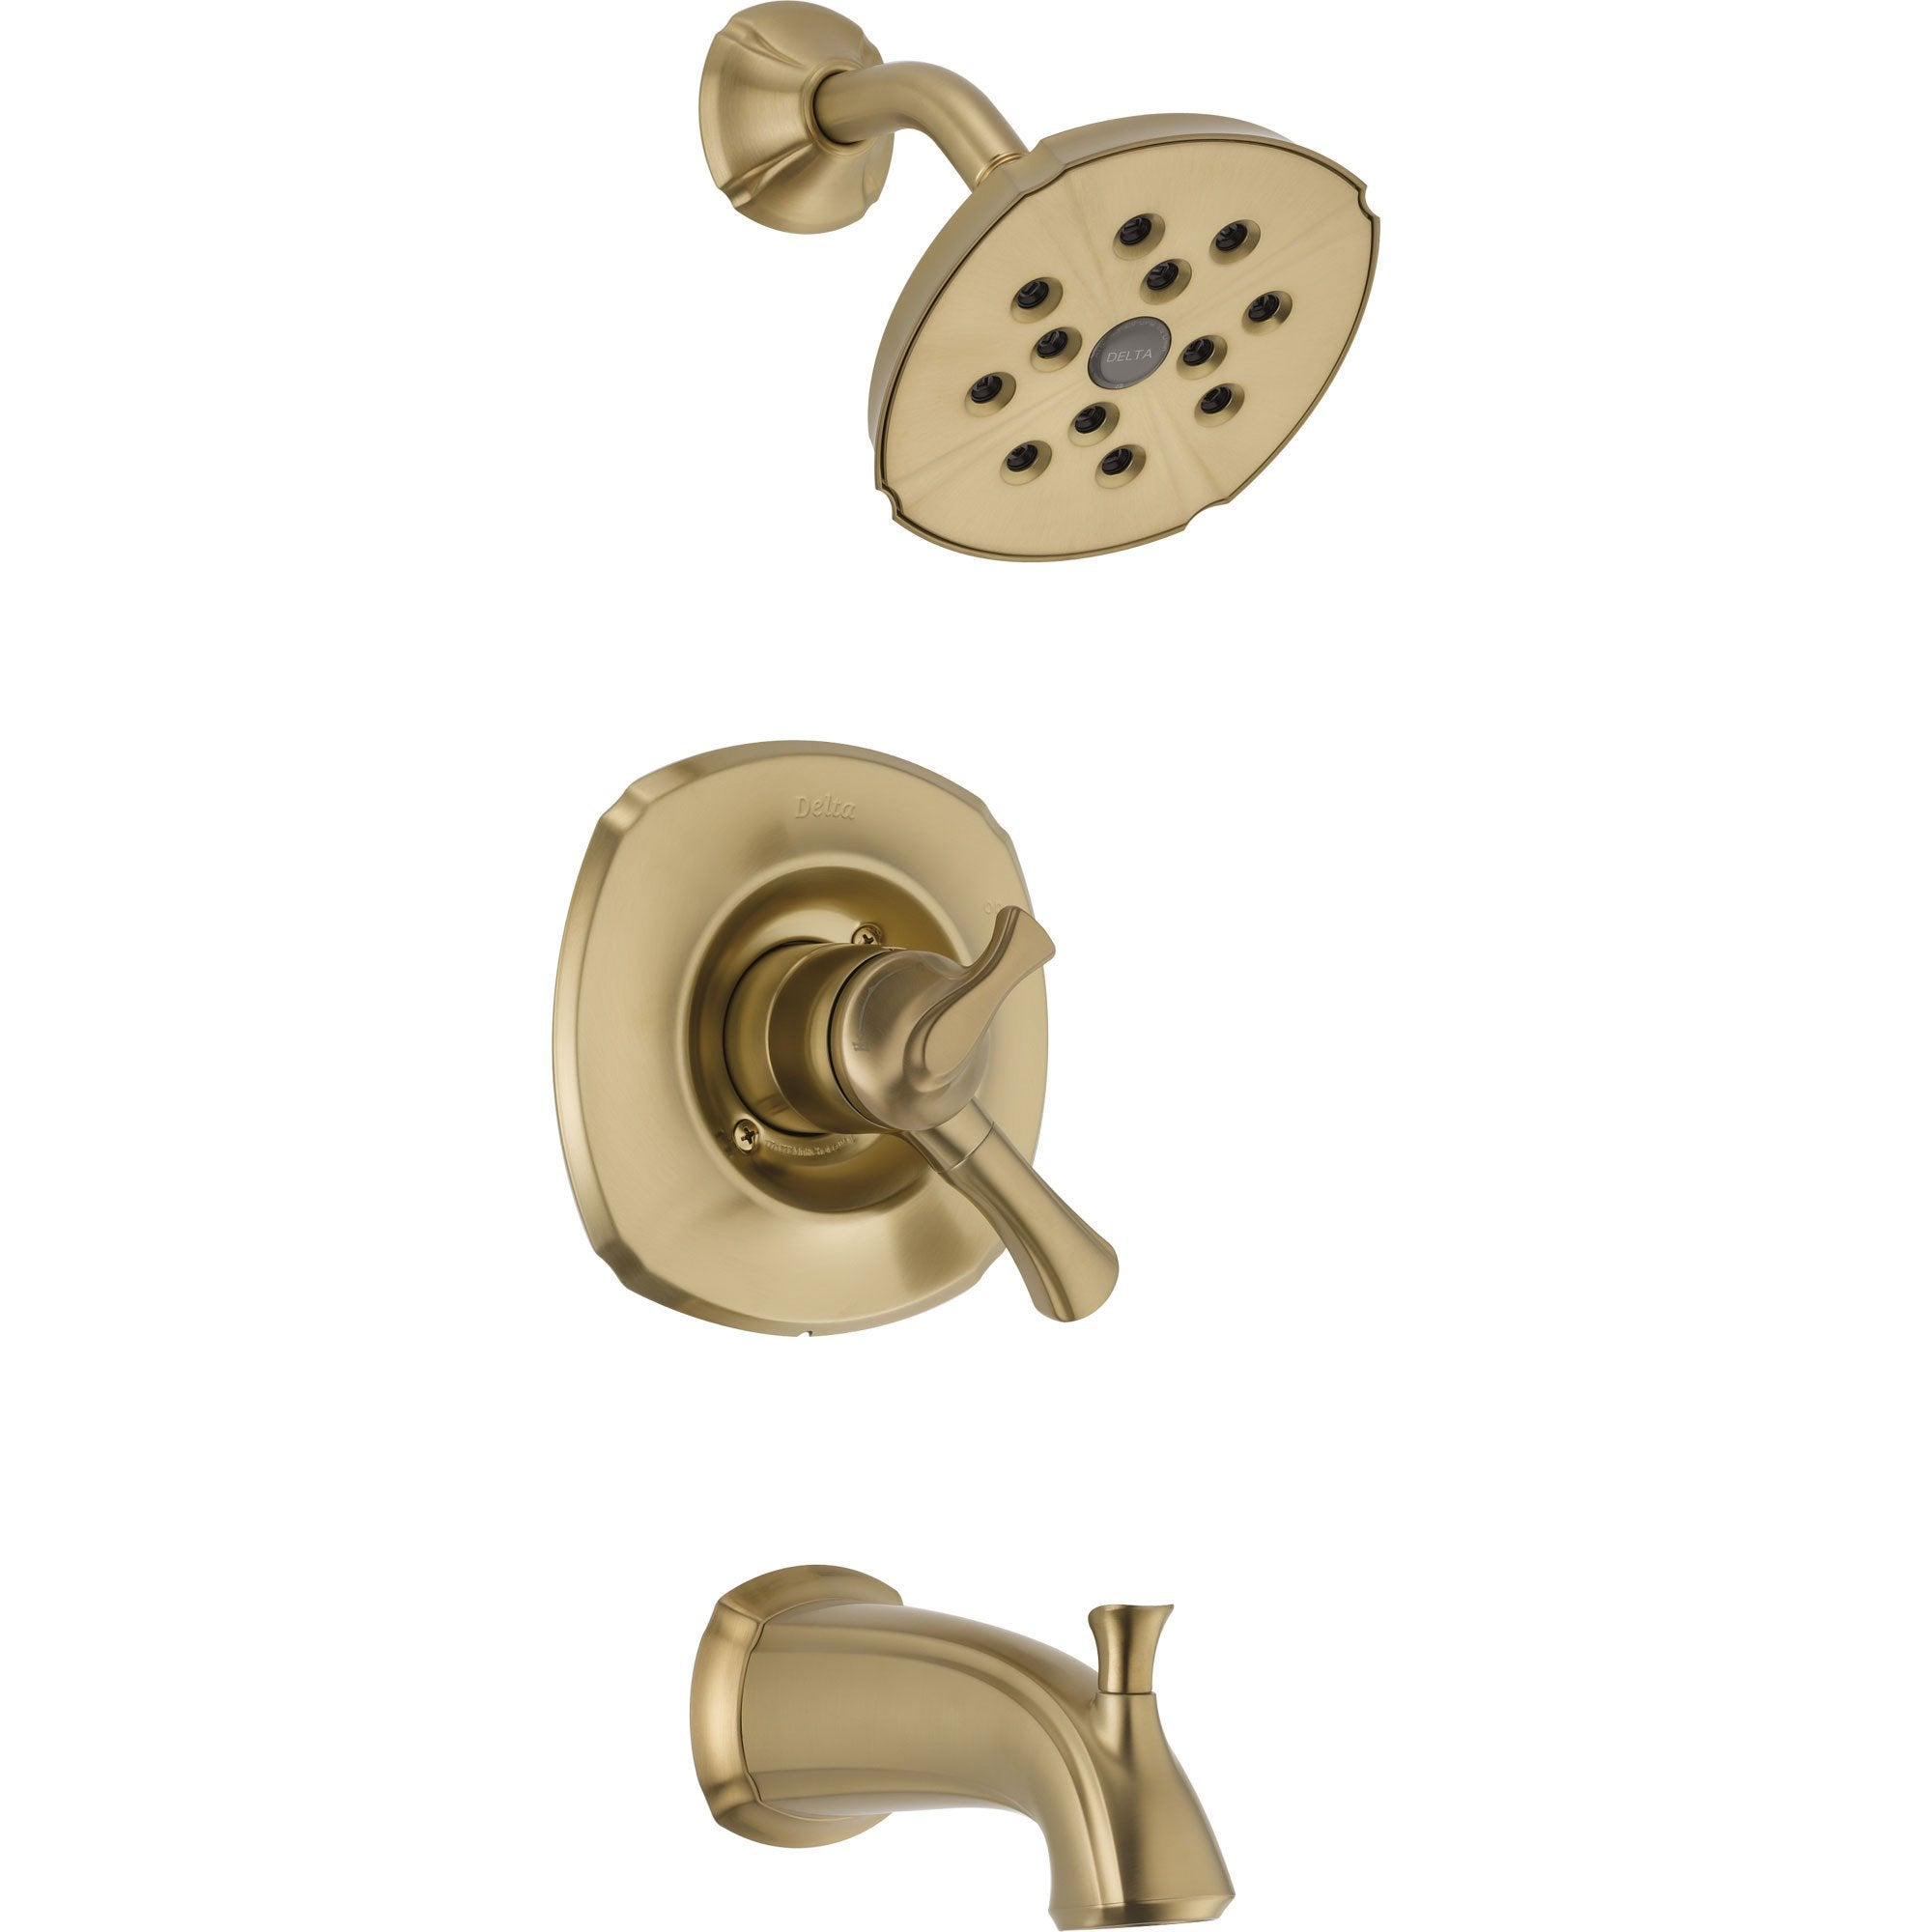 Delta Addison Champagne Bronze Tub and Shower Combination Faucet w/ Valve D408V